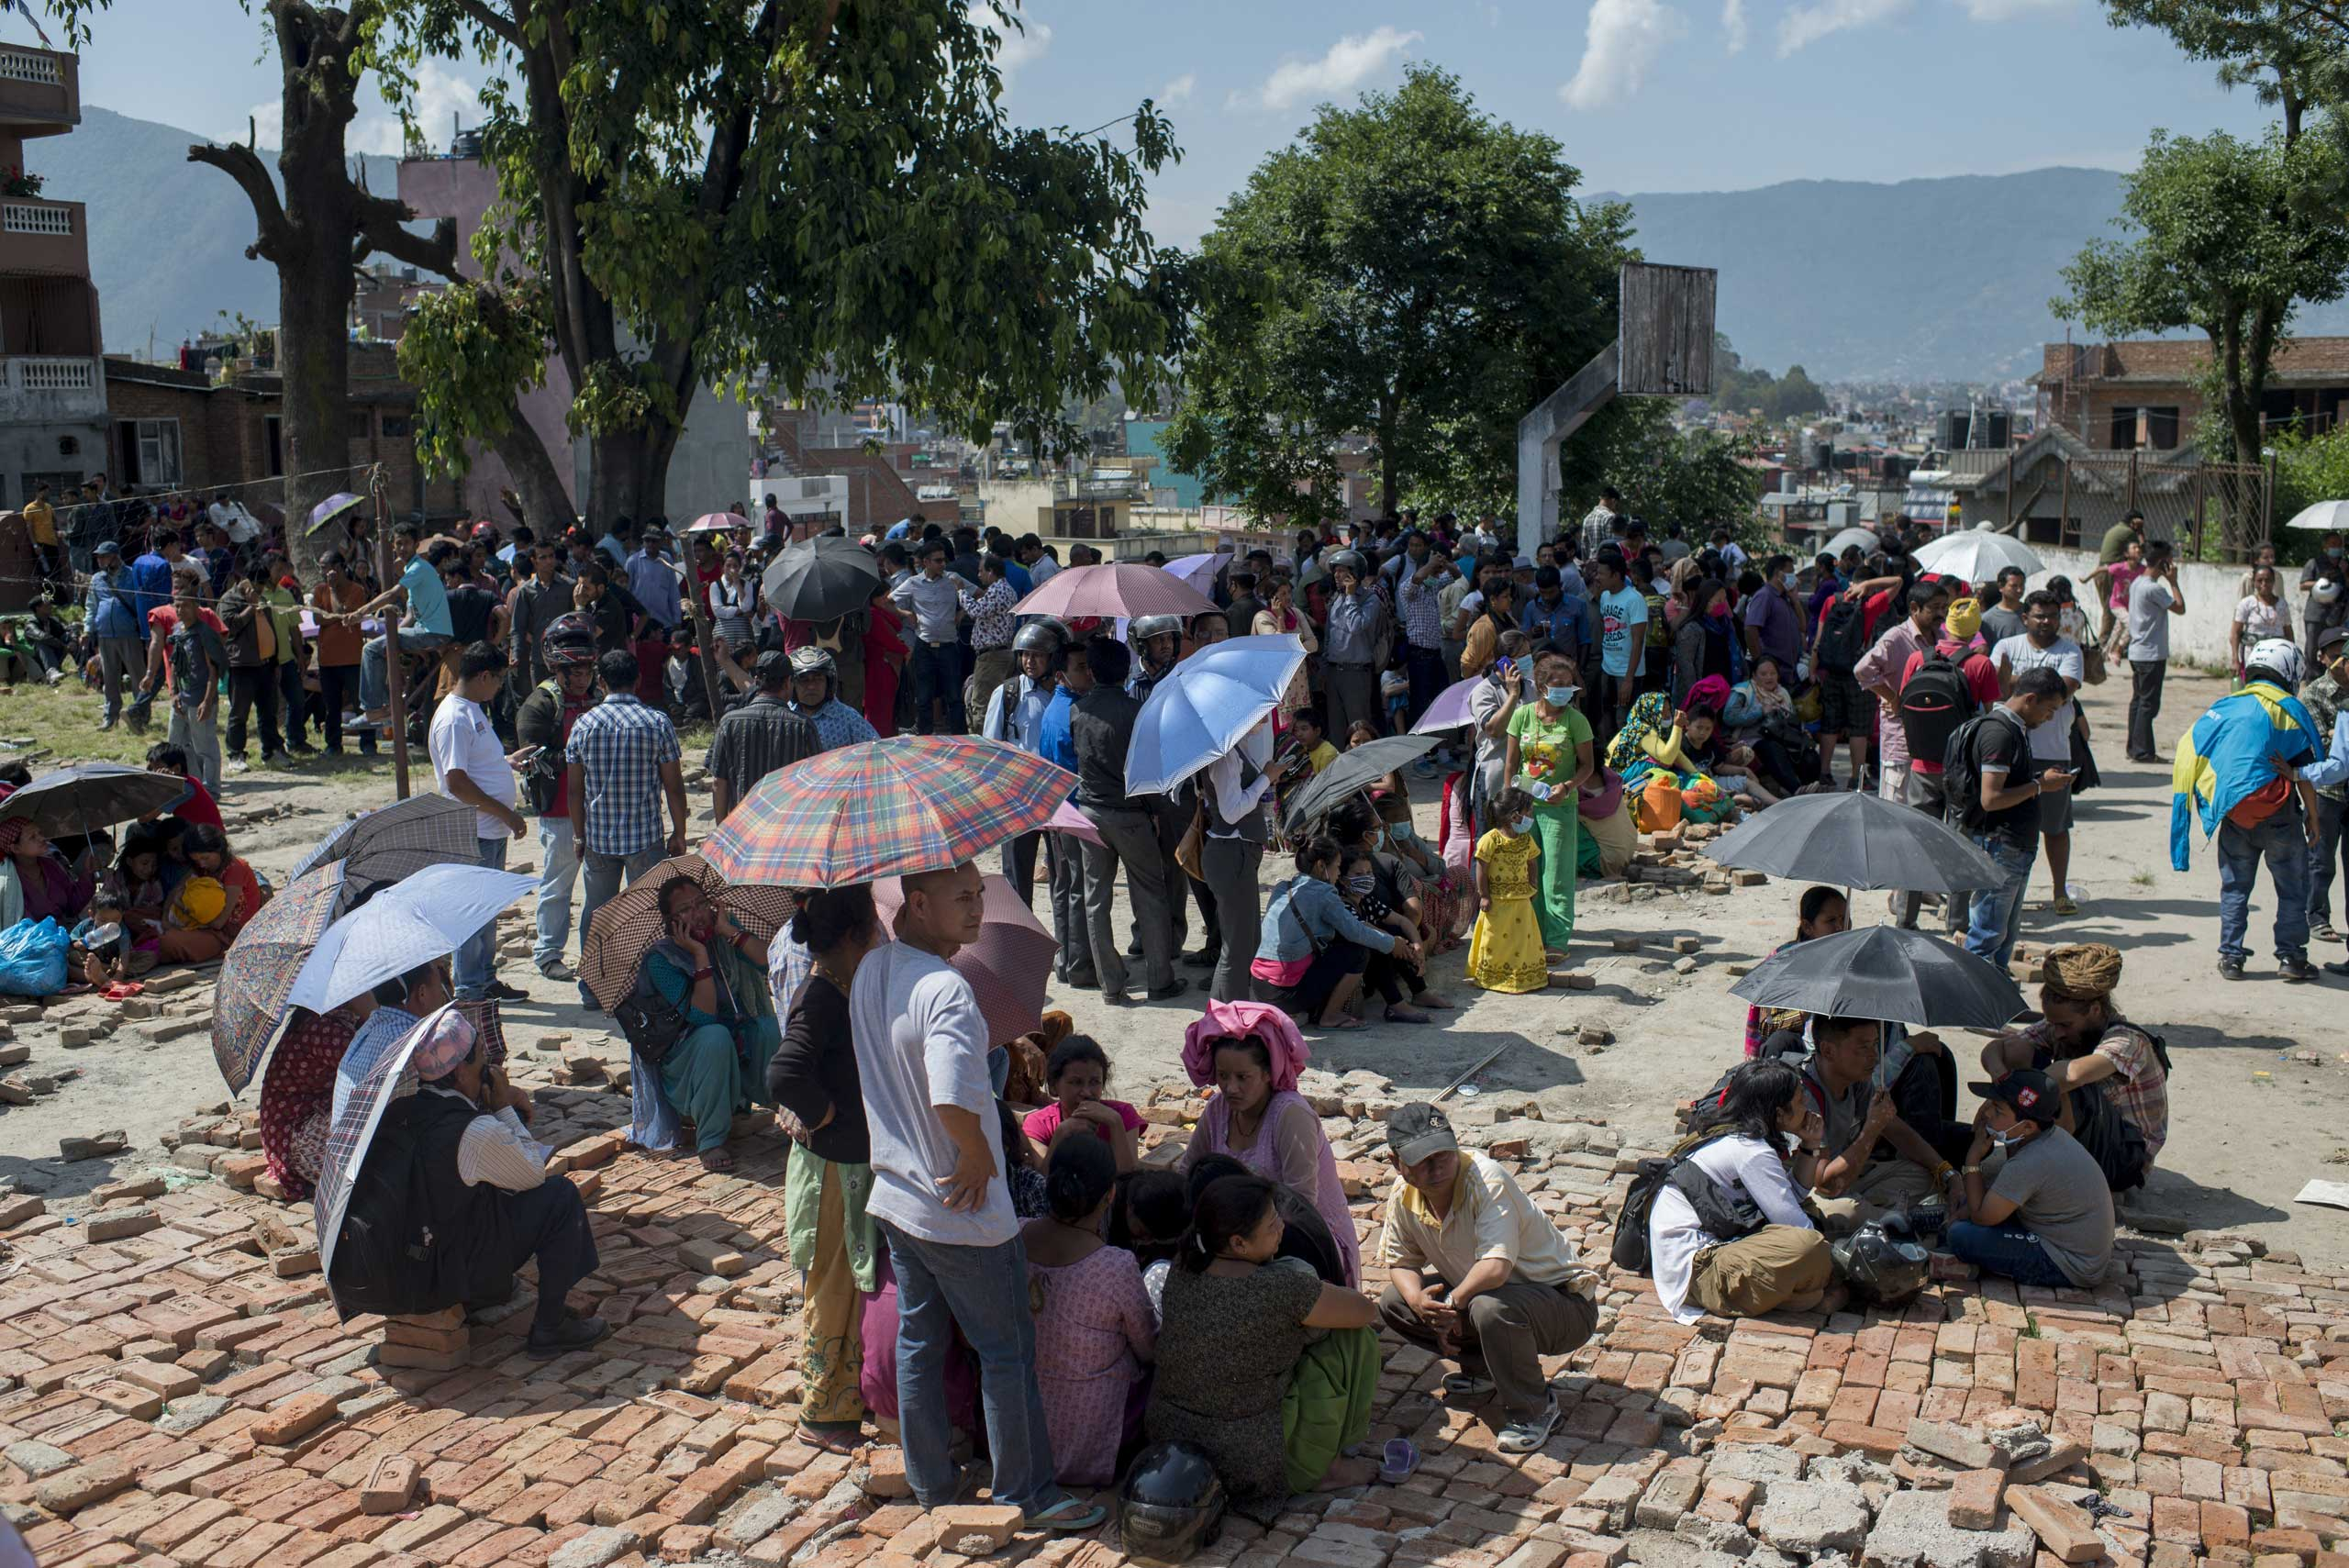 People gather in the safety of open space following a further major earthquake in Kathmandu on May 12, 2015.